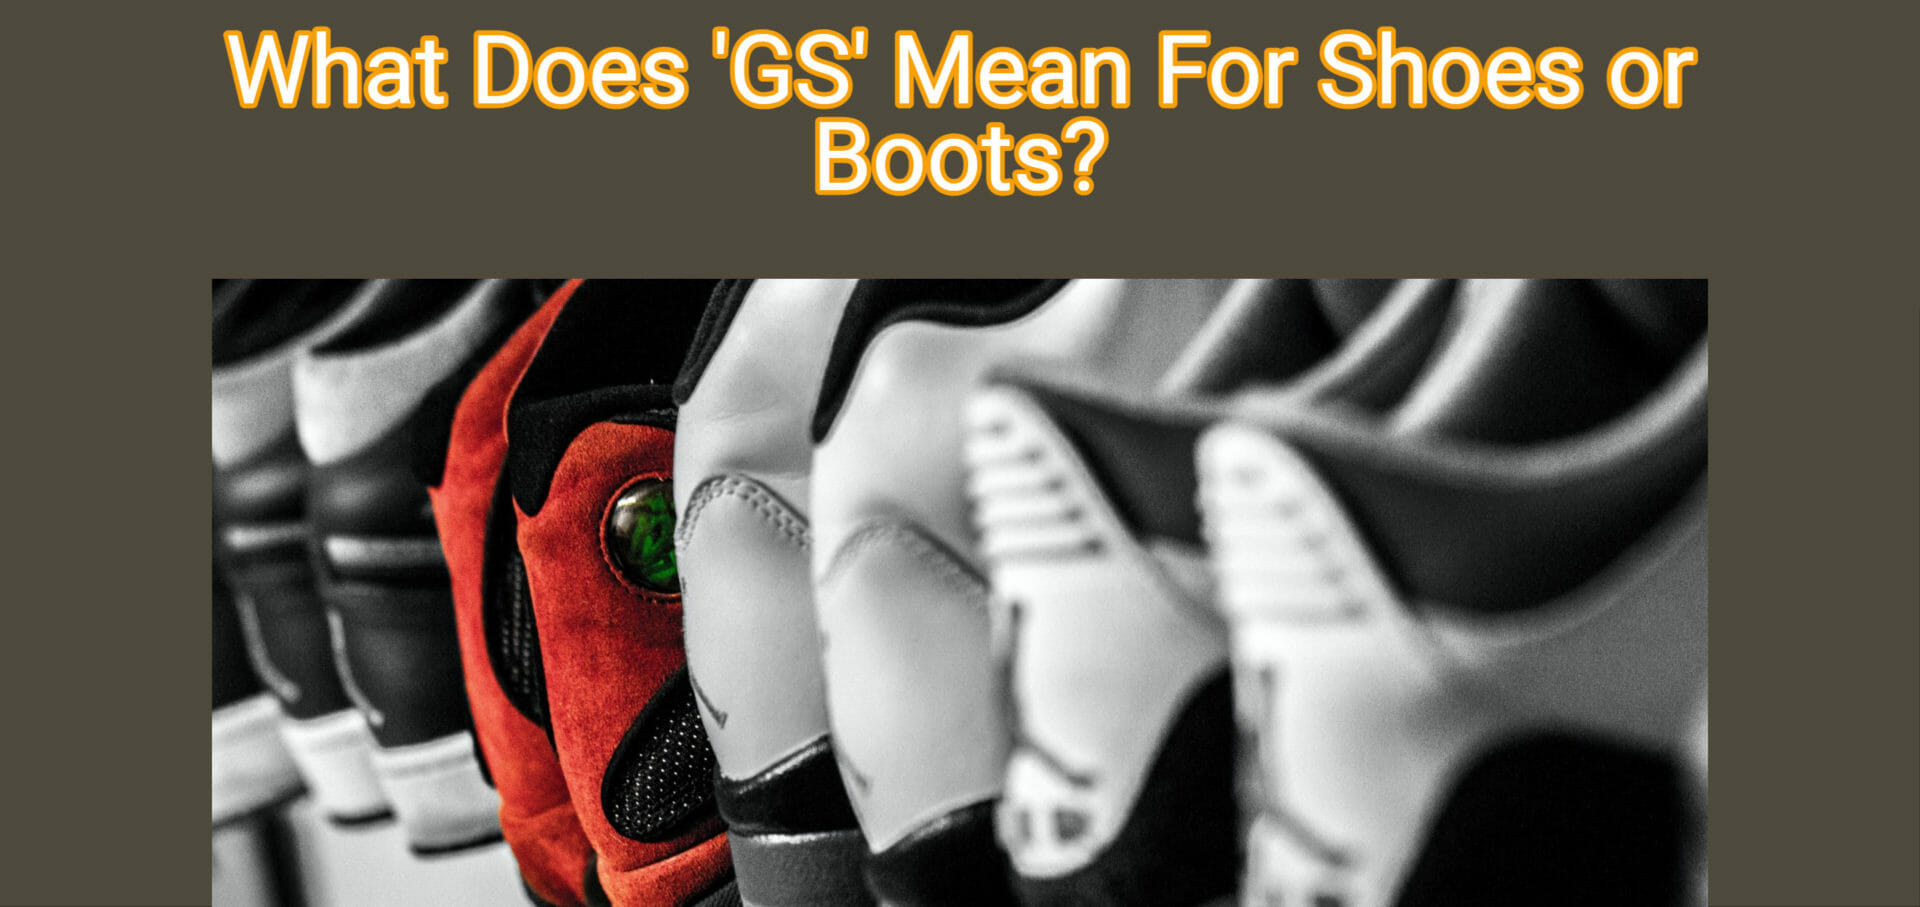 Precisely What Does GS Mean For Shoes Or Boots?